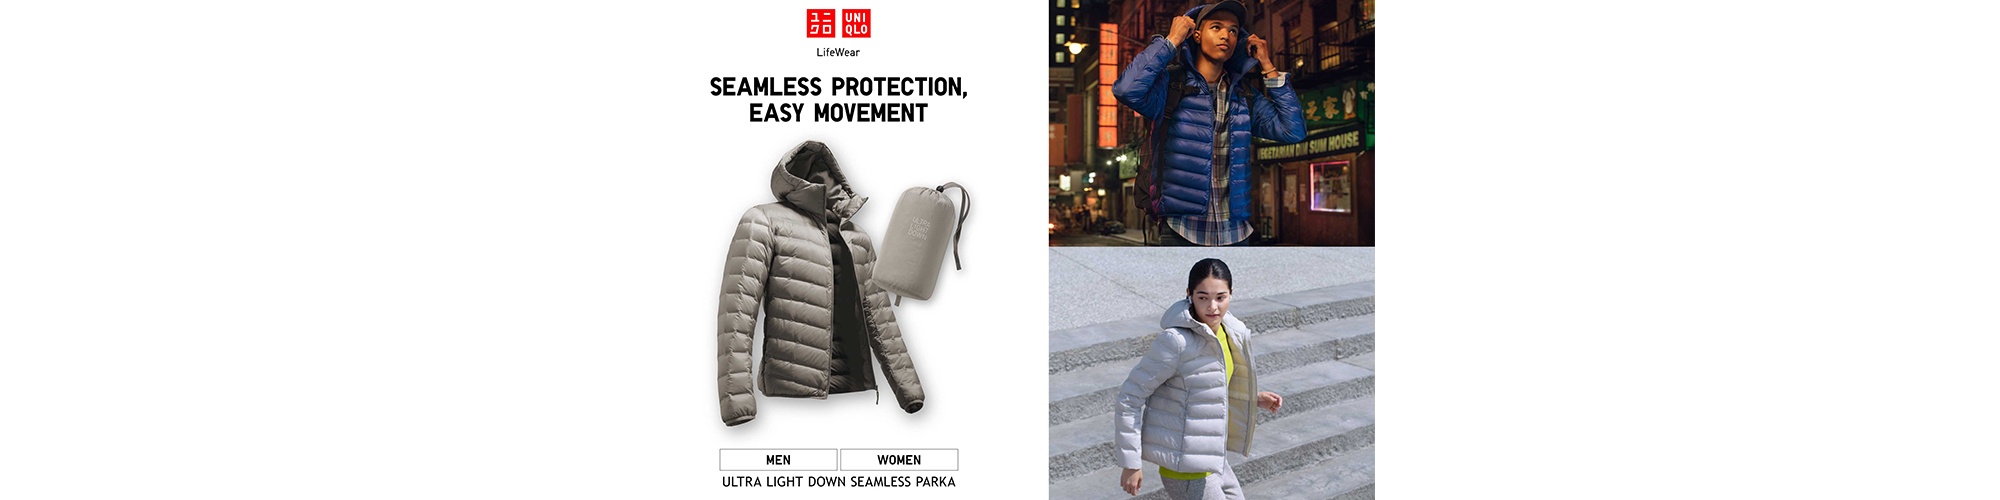 km_website_slider_uniqlo_301018